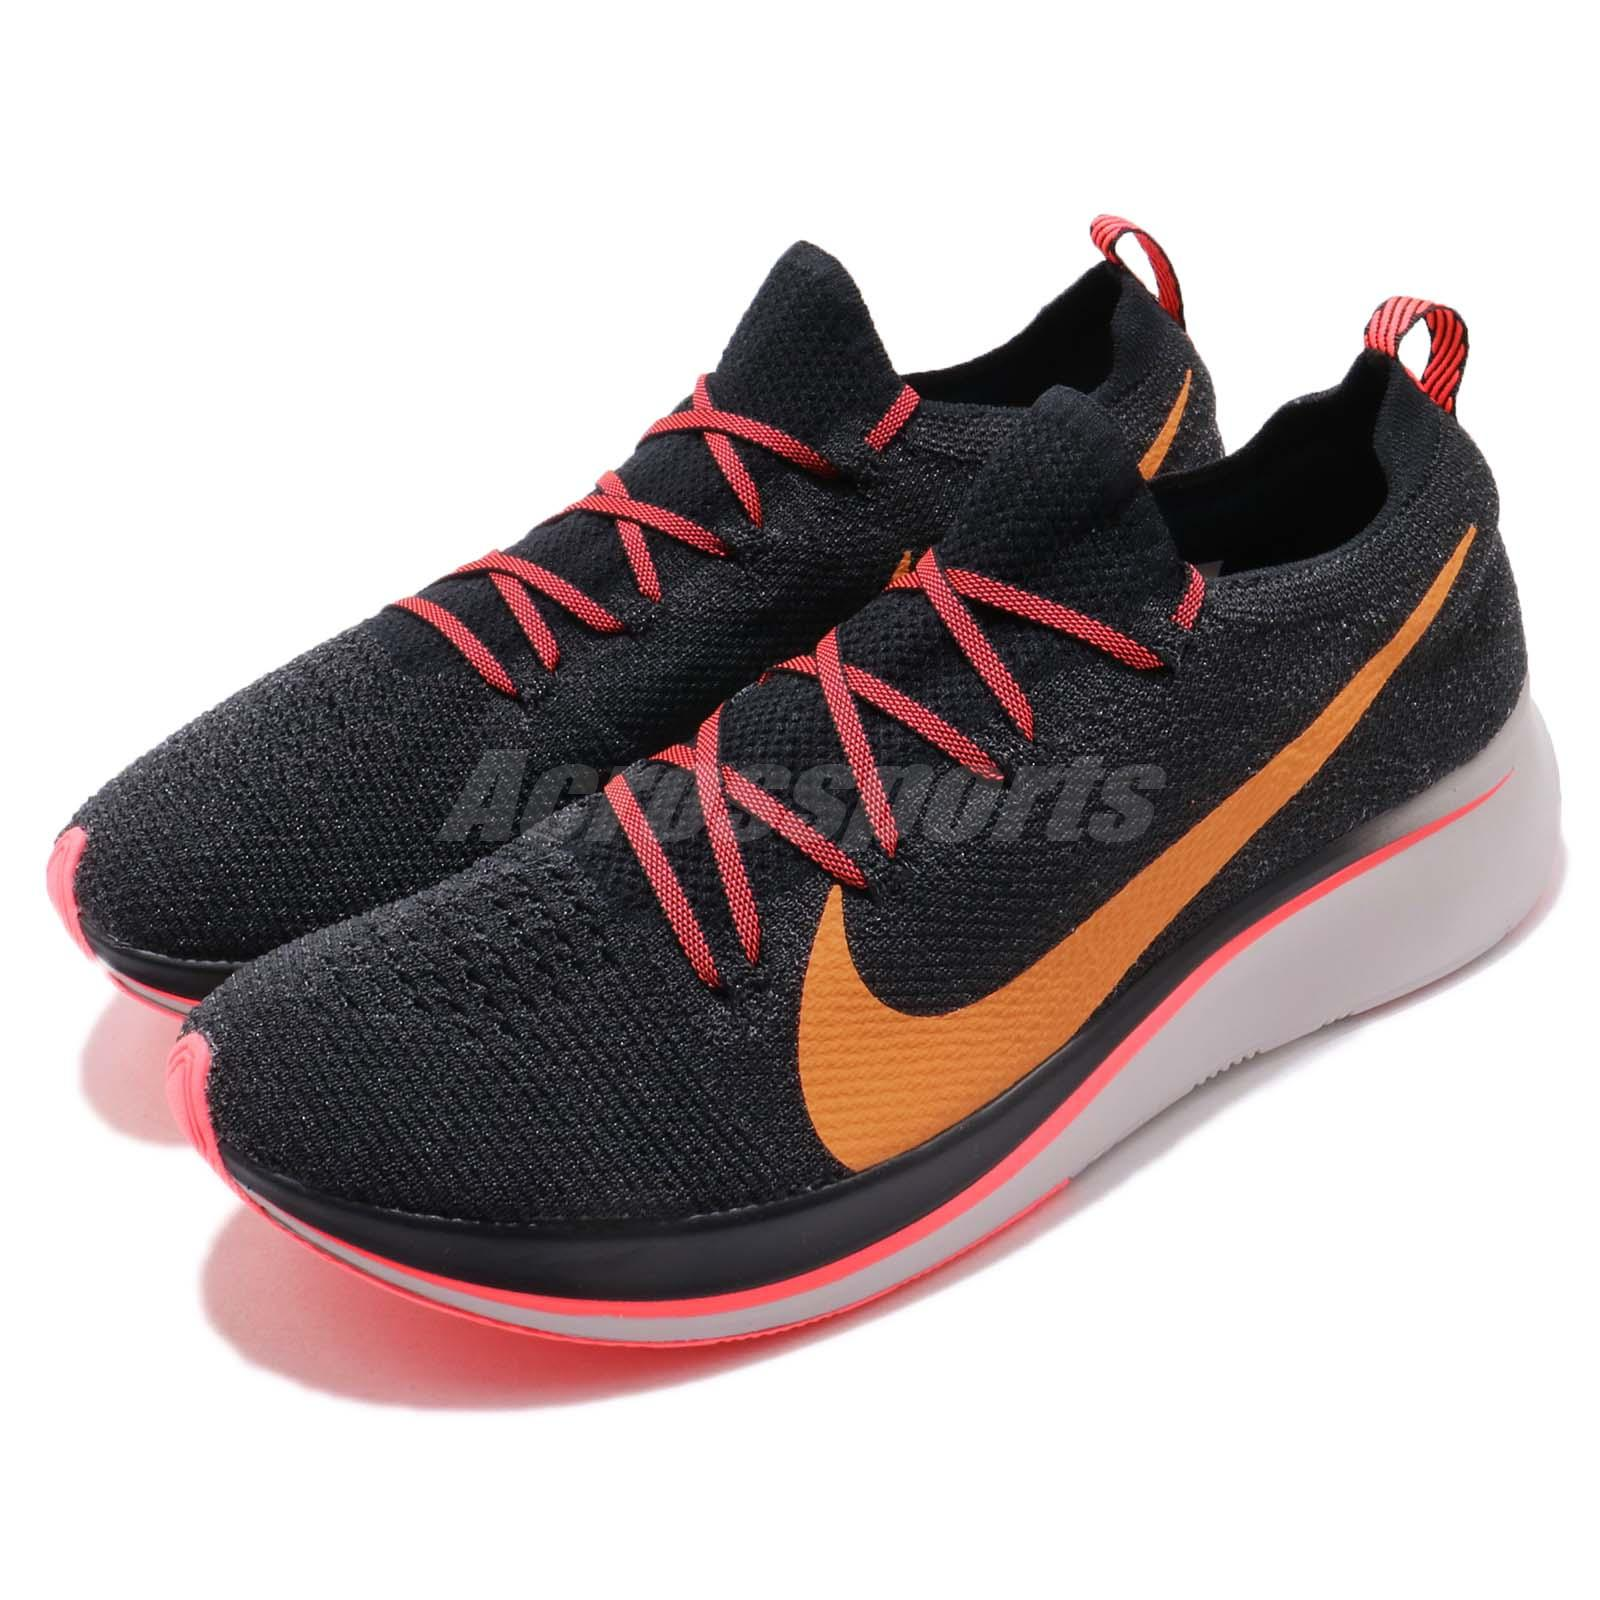 9644ab9be3320 Details about Nike Zoom Fly FK Flyknit Black Orange Peel Men Running Shoes  Sneakers AR4561-068